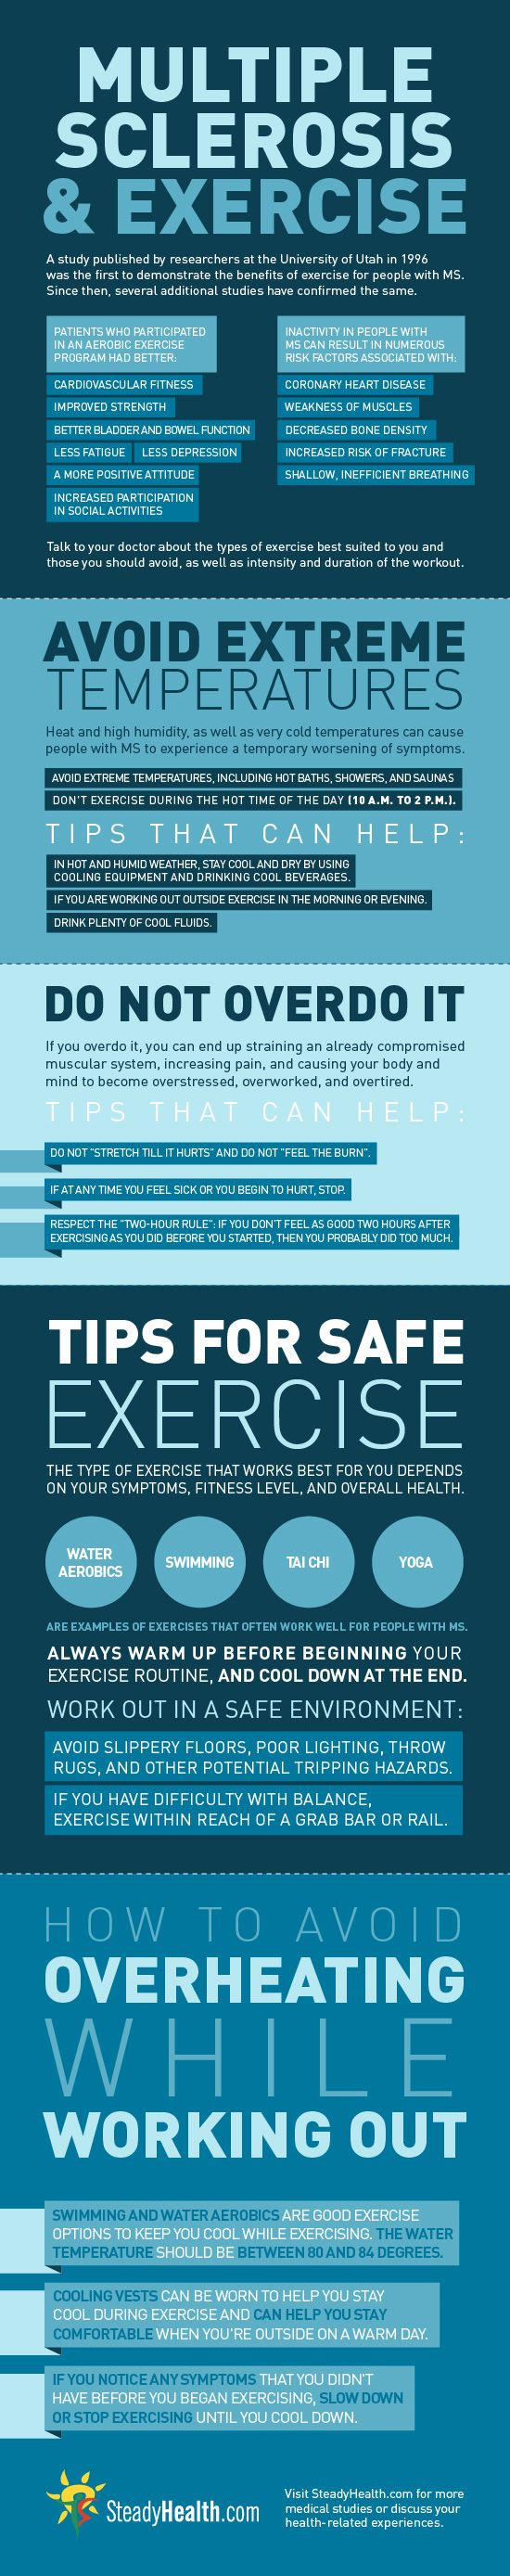 MS and exercise